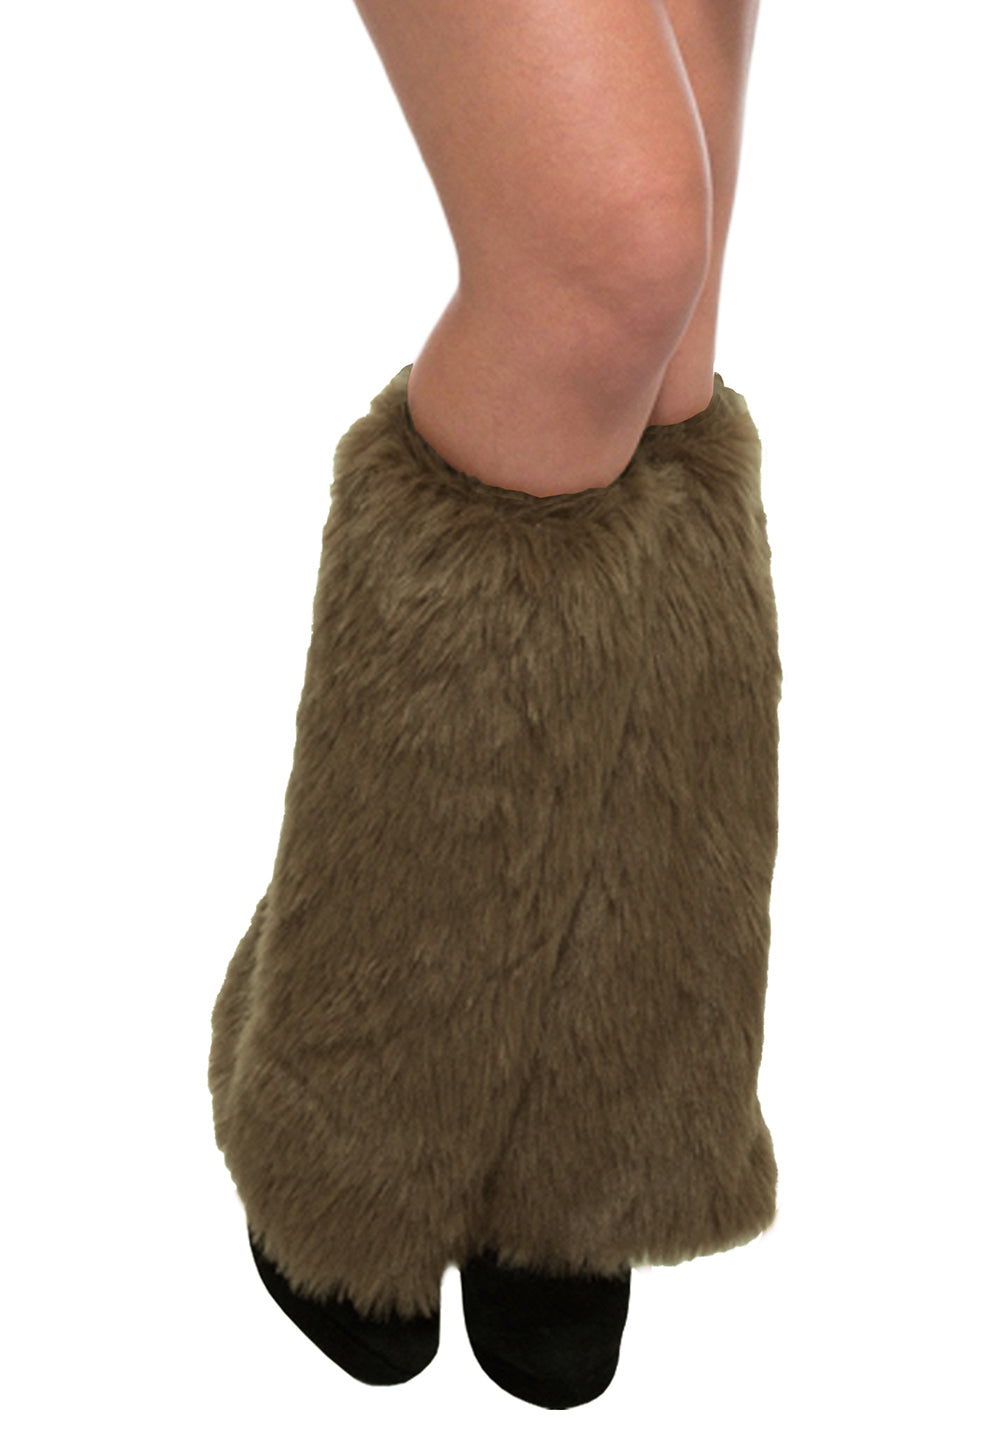 Brown Furry Leg Warmers